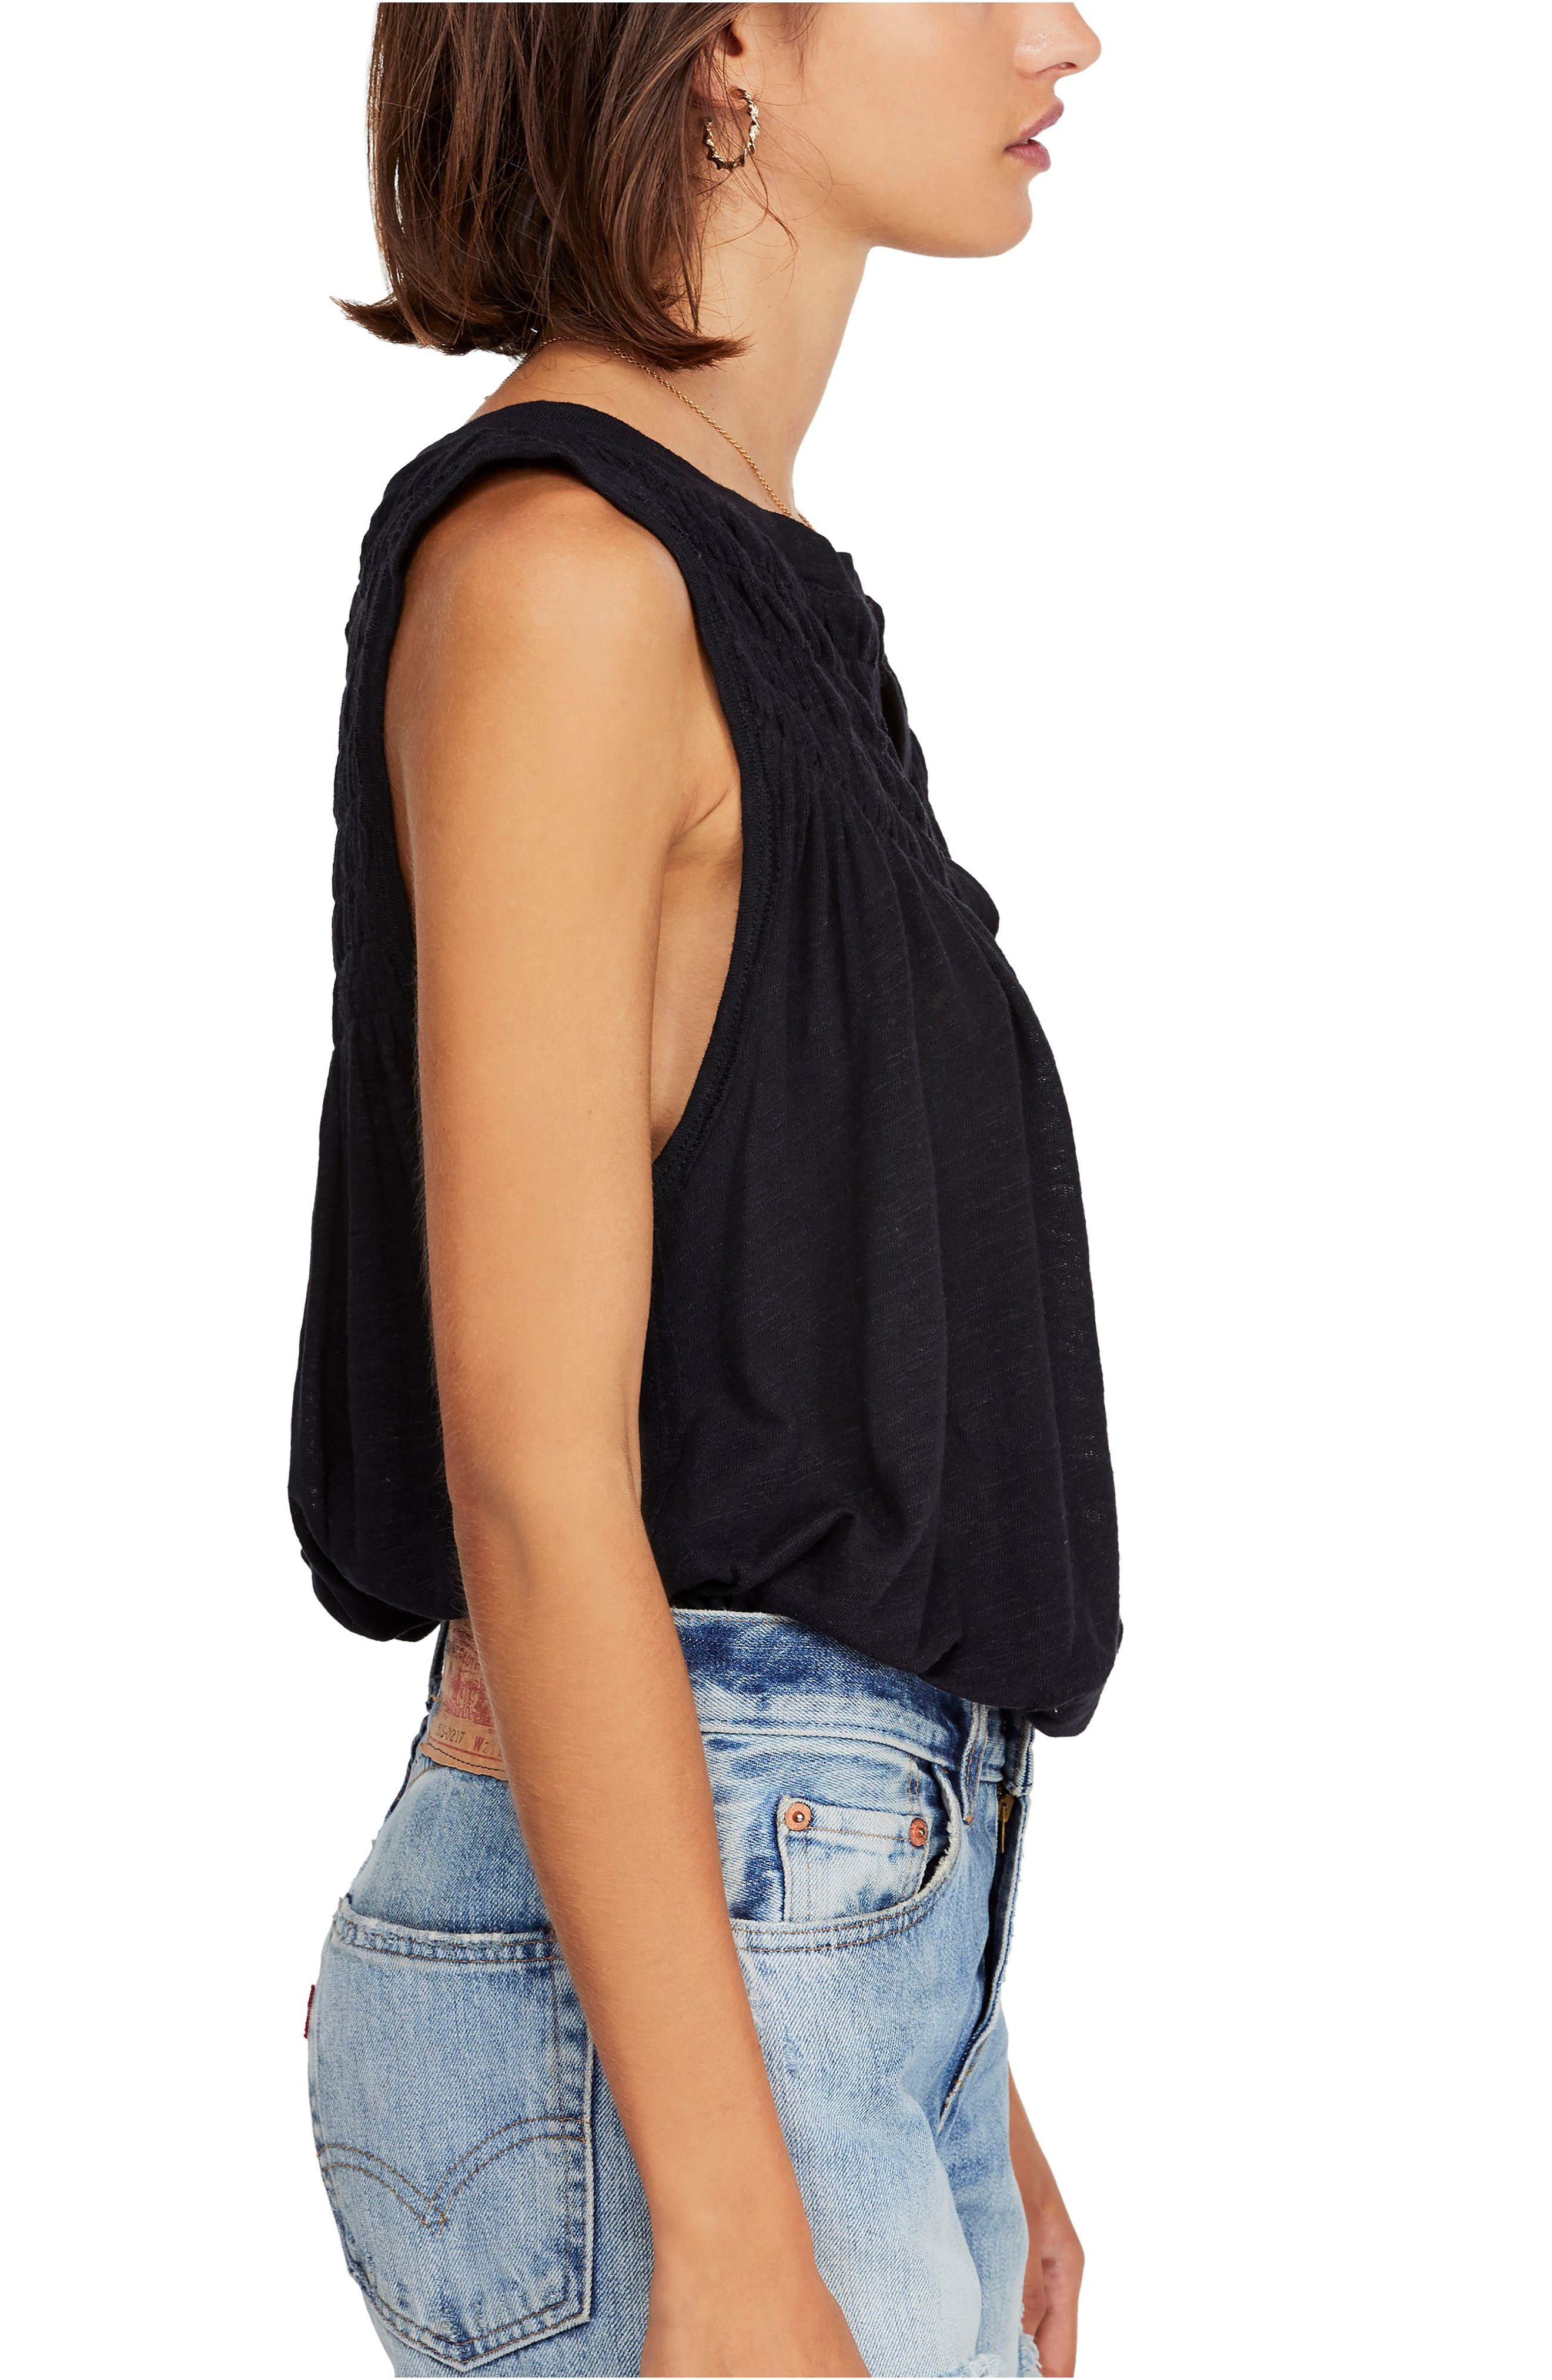 FREE PEOPLE, New to Town Tank, Alternate thumbnail 3, color, 001